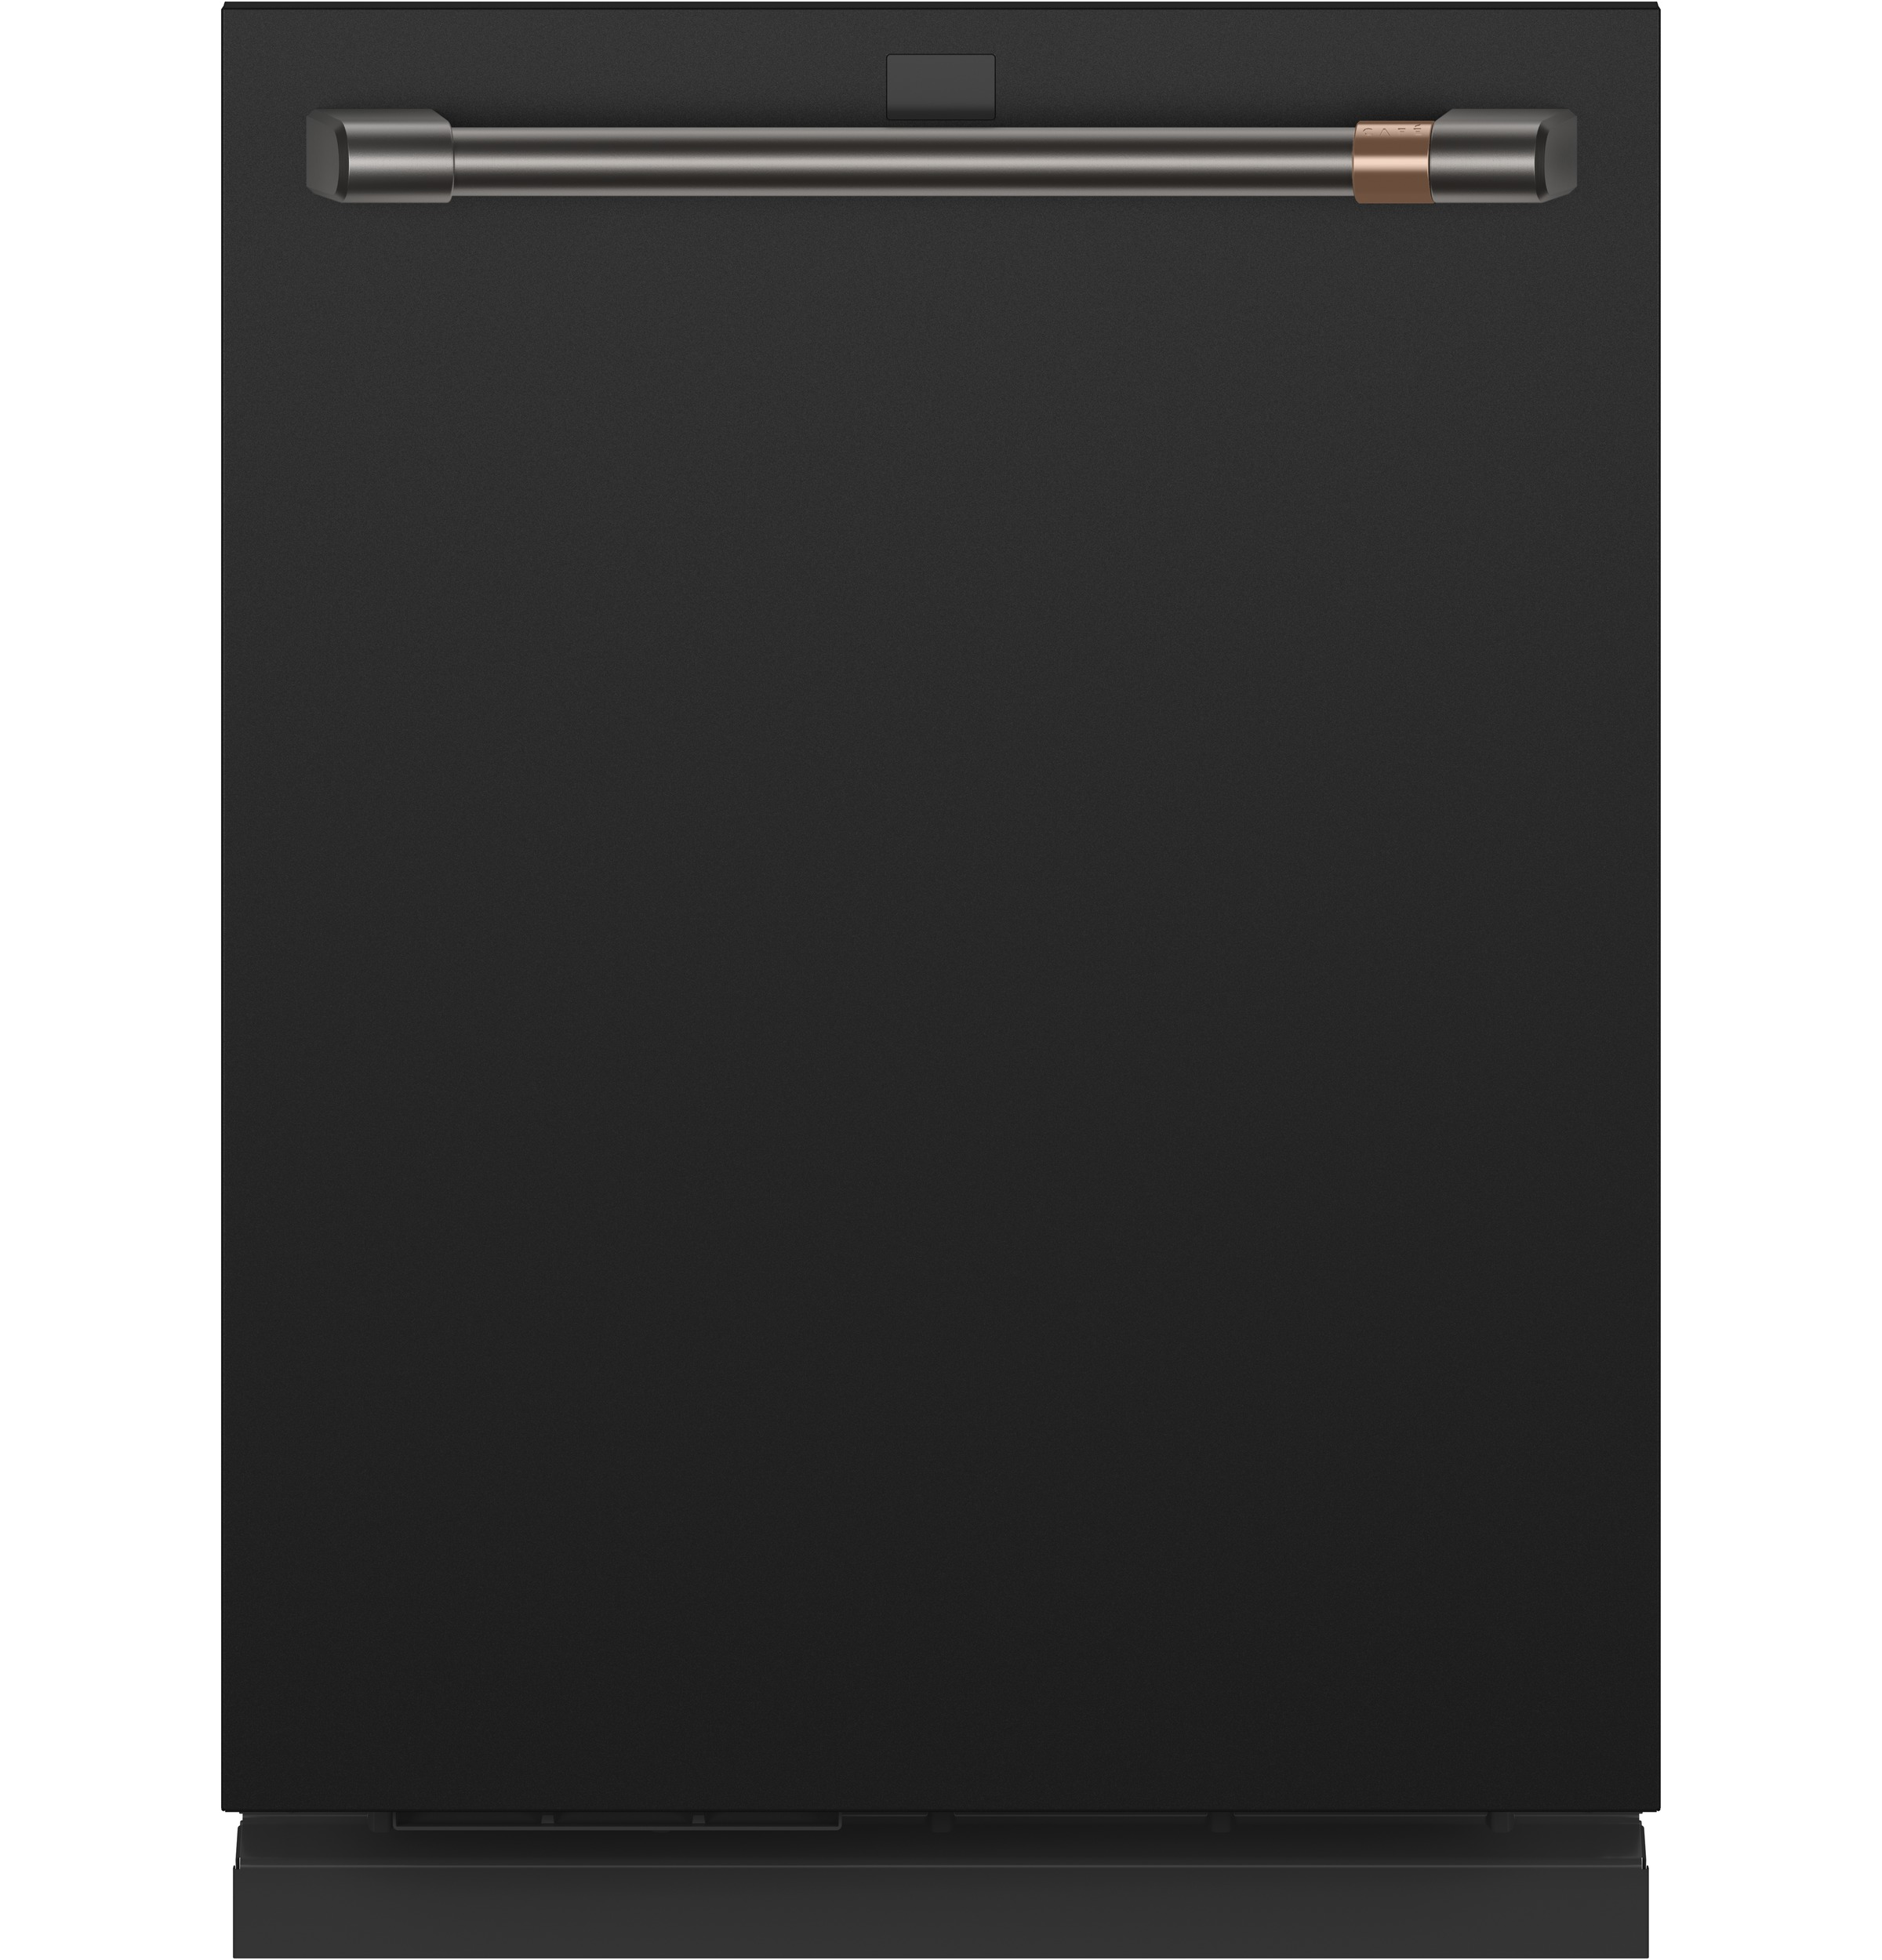 Model: CDT875P3ND1 | Cafe Café™ Smart Stainless Steel Interior Dishwasher with Sanitize and Ultra Wash & Dual Convection Ultra Dry